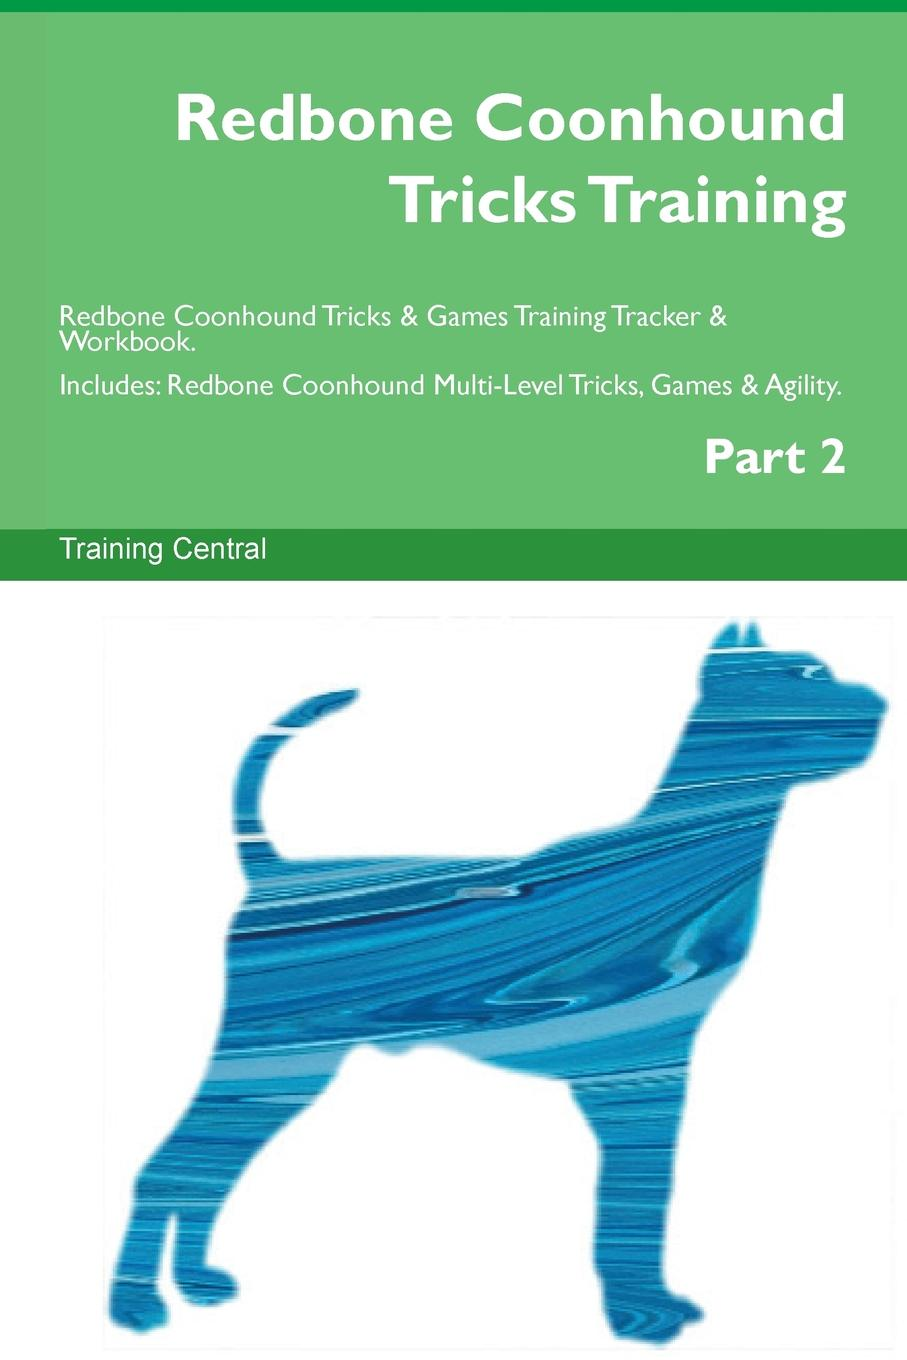 Training Central Redbone Coonhound Tricks Training Redbone Coonhound Tricks . Games Training Tracker . Workbook. Includes. Redbone Coonhound Multi-Level Tricks, Games . Agility. Part 2 this book loves you